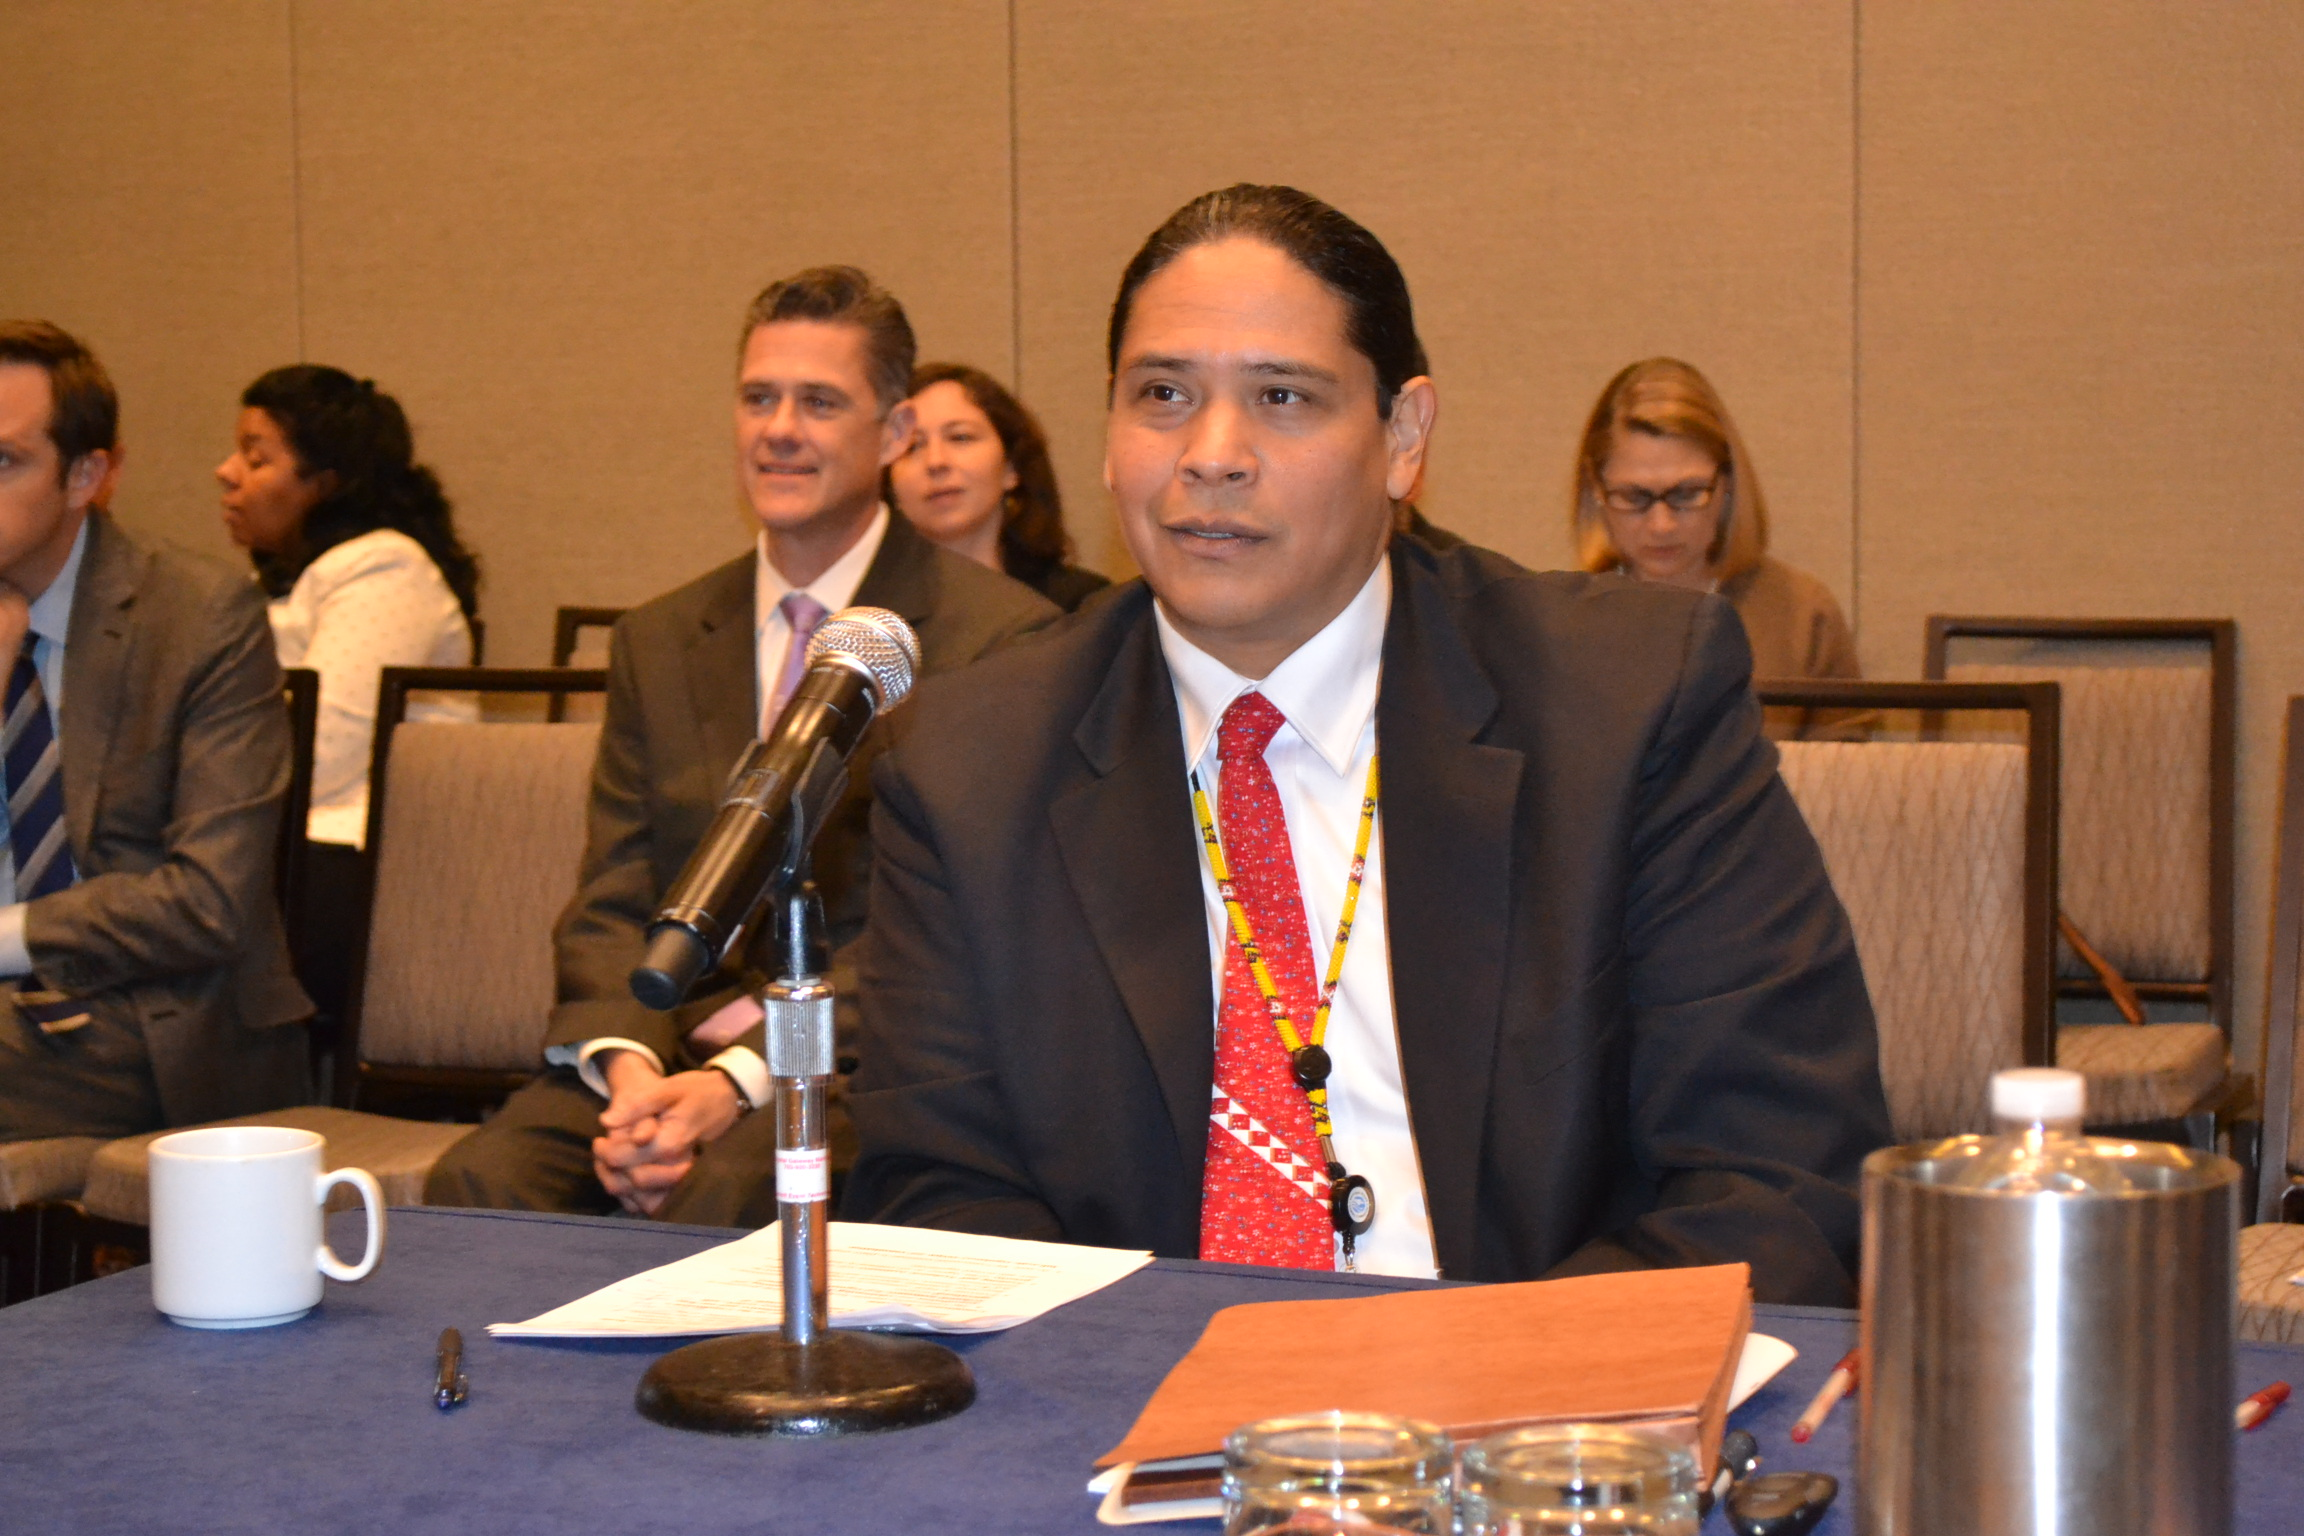 Jonodev Osceola Chaudhuri, chairman of the National Indian Gaming Commission, will attend the conference.